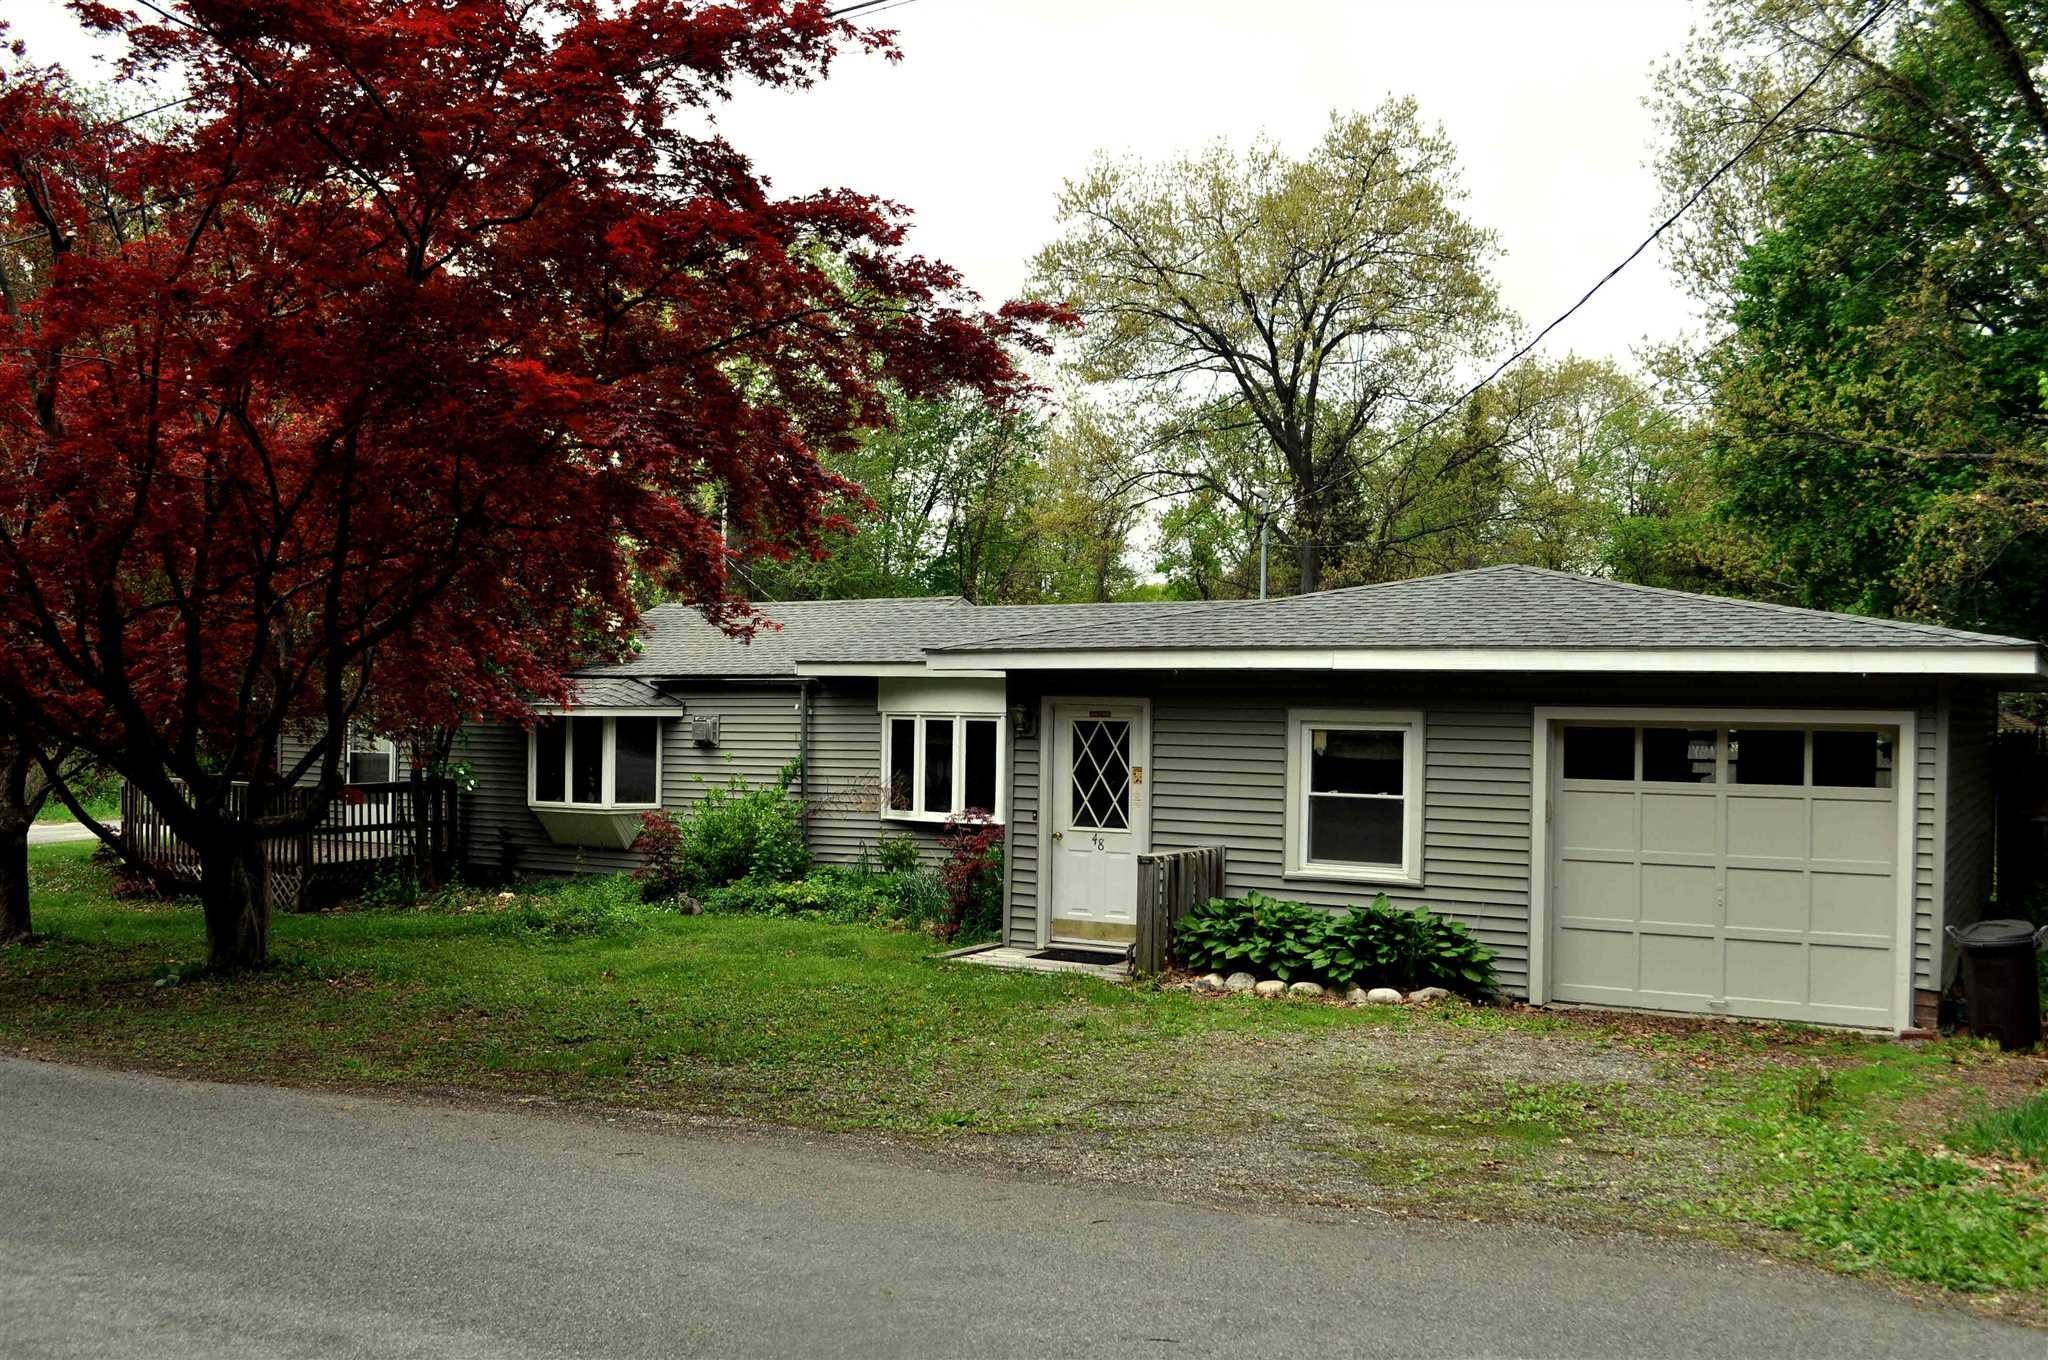 Single Family Home for Sale at 48 LOYOLA Road 48 LOYOLA Road Elizaville, New York 12523 United States